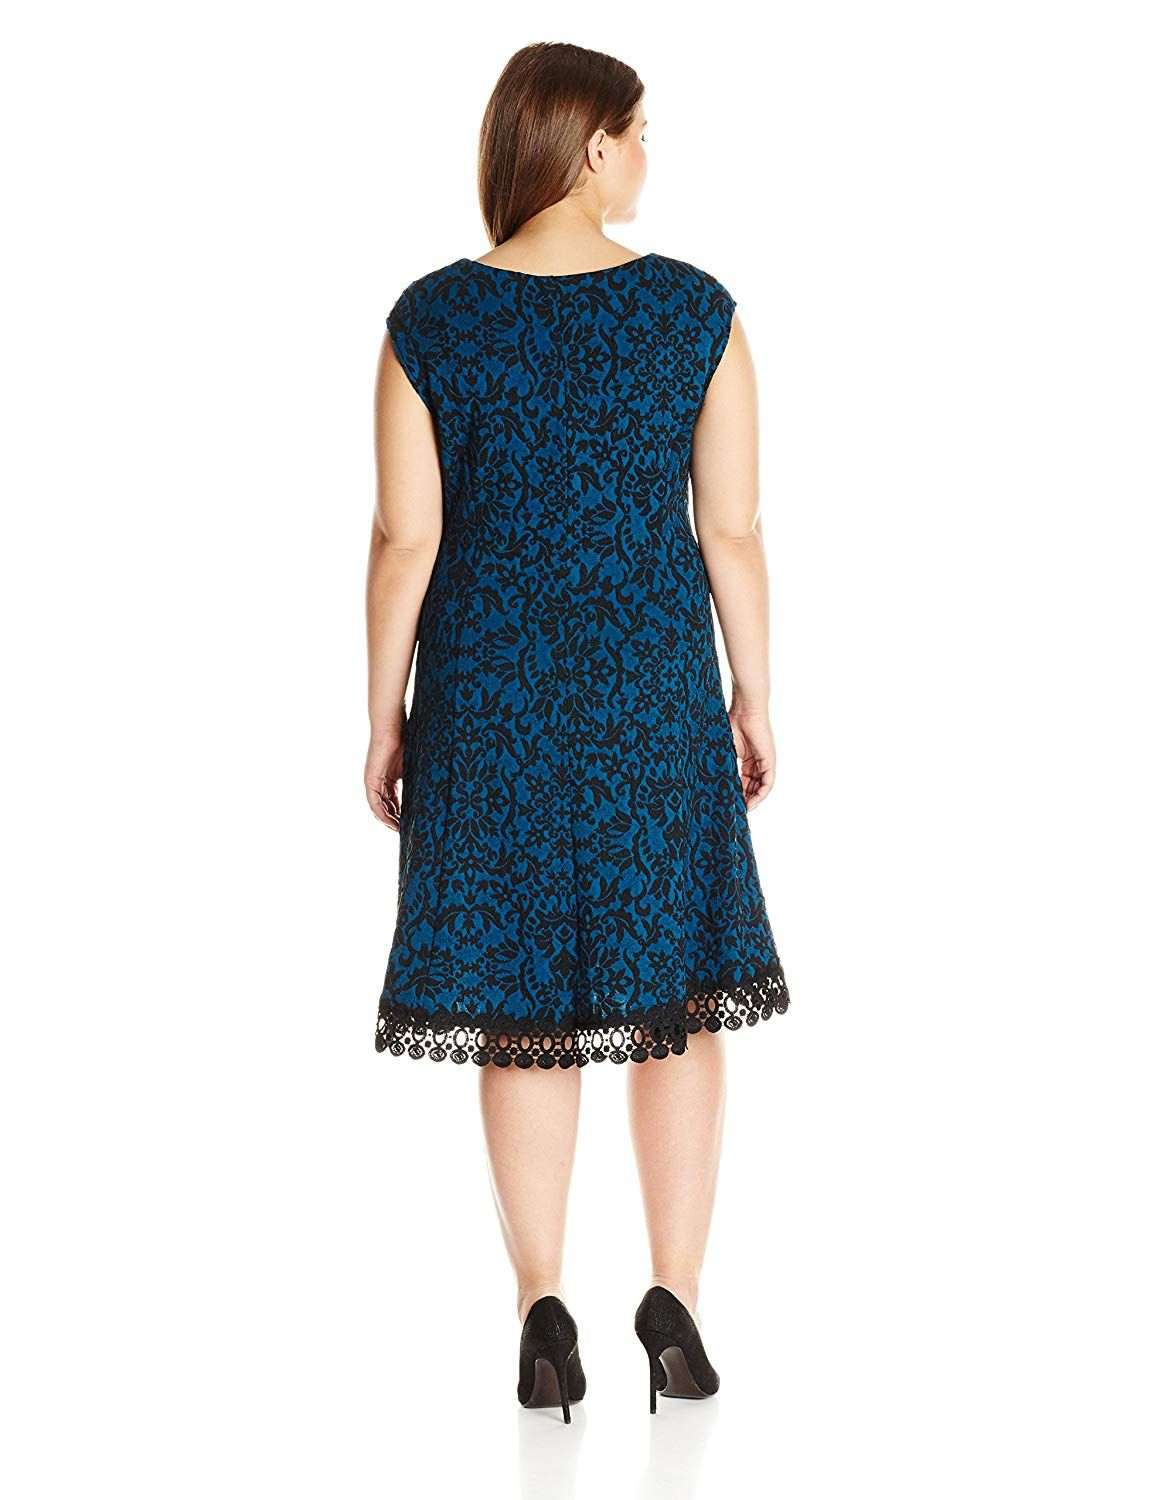 0eb9a2d81fc Sandra Darren Women s Plus Size 1 Pc Extended Shoulder Couble Knit Lace  Dress     Learn more by visiting the image link. (This is an affiliate  link)   ...